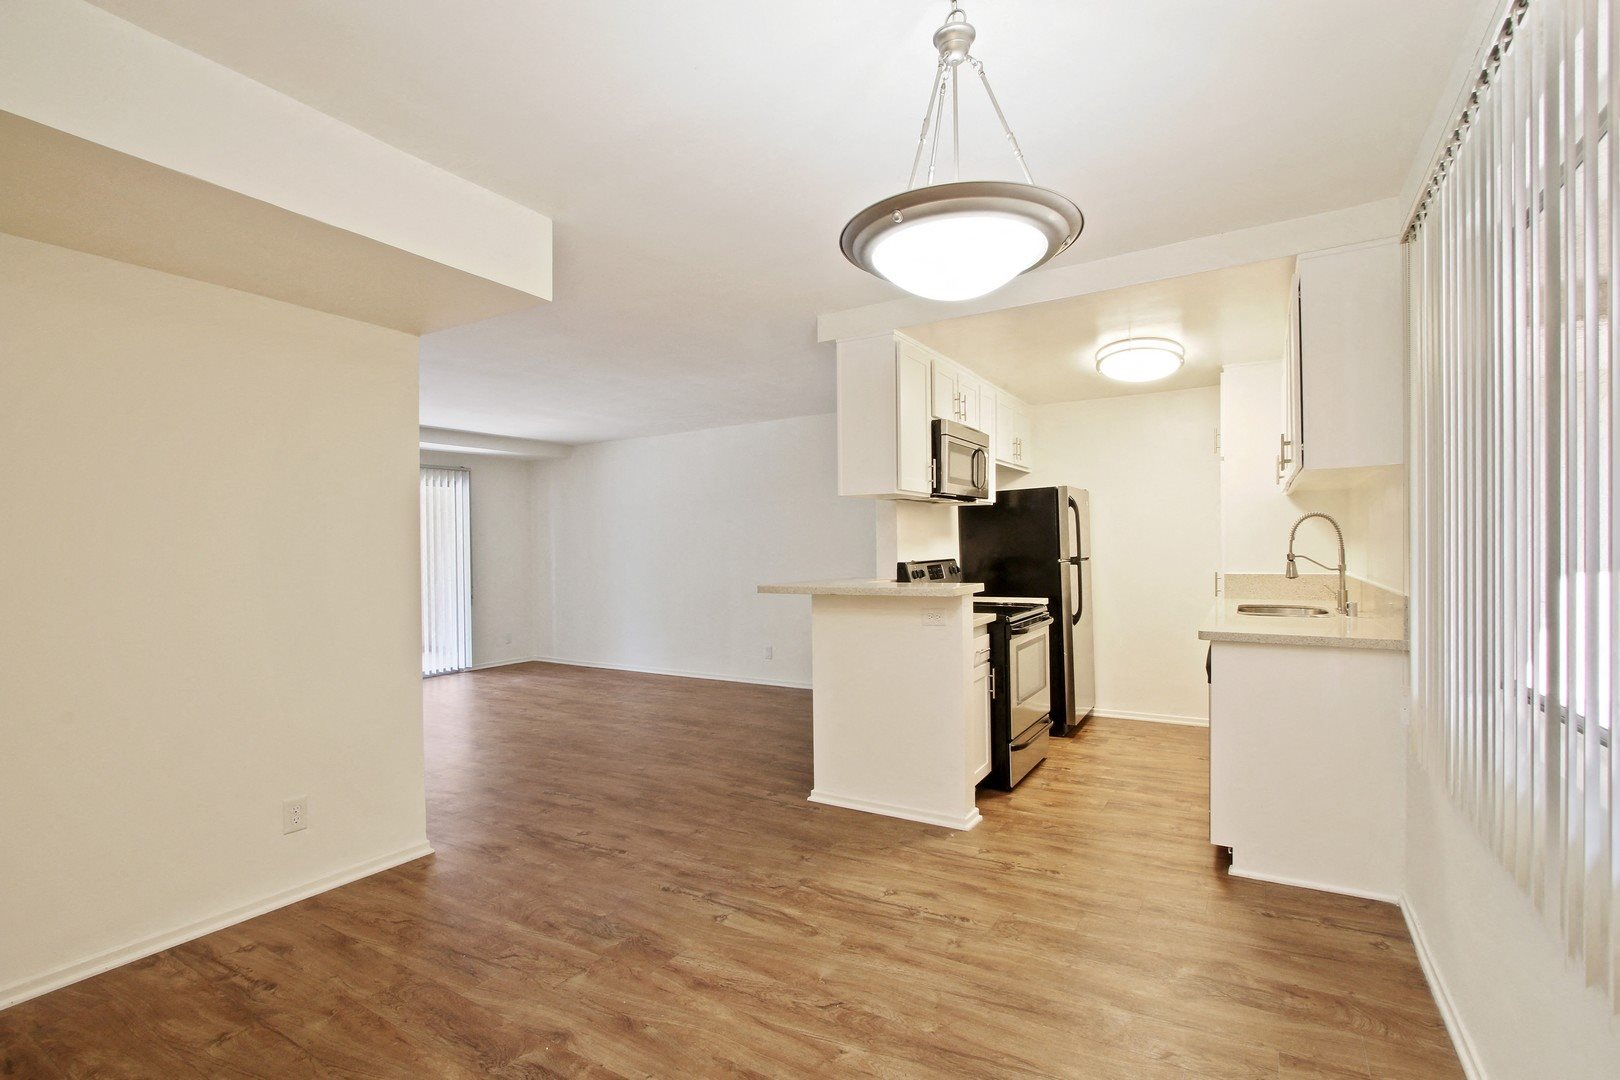 Dining room with wood Inspired flooring